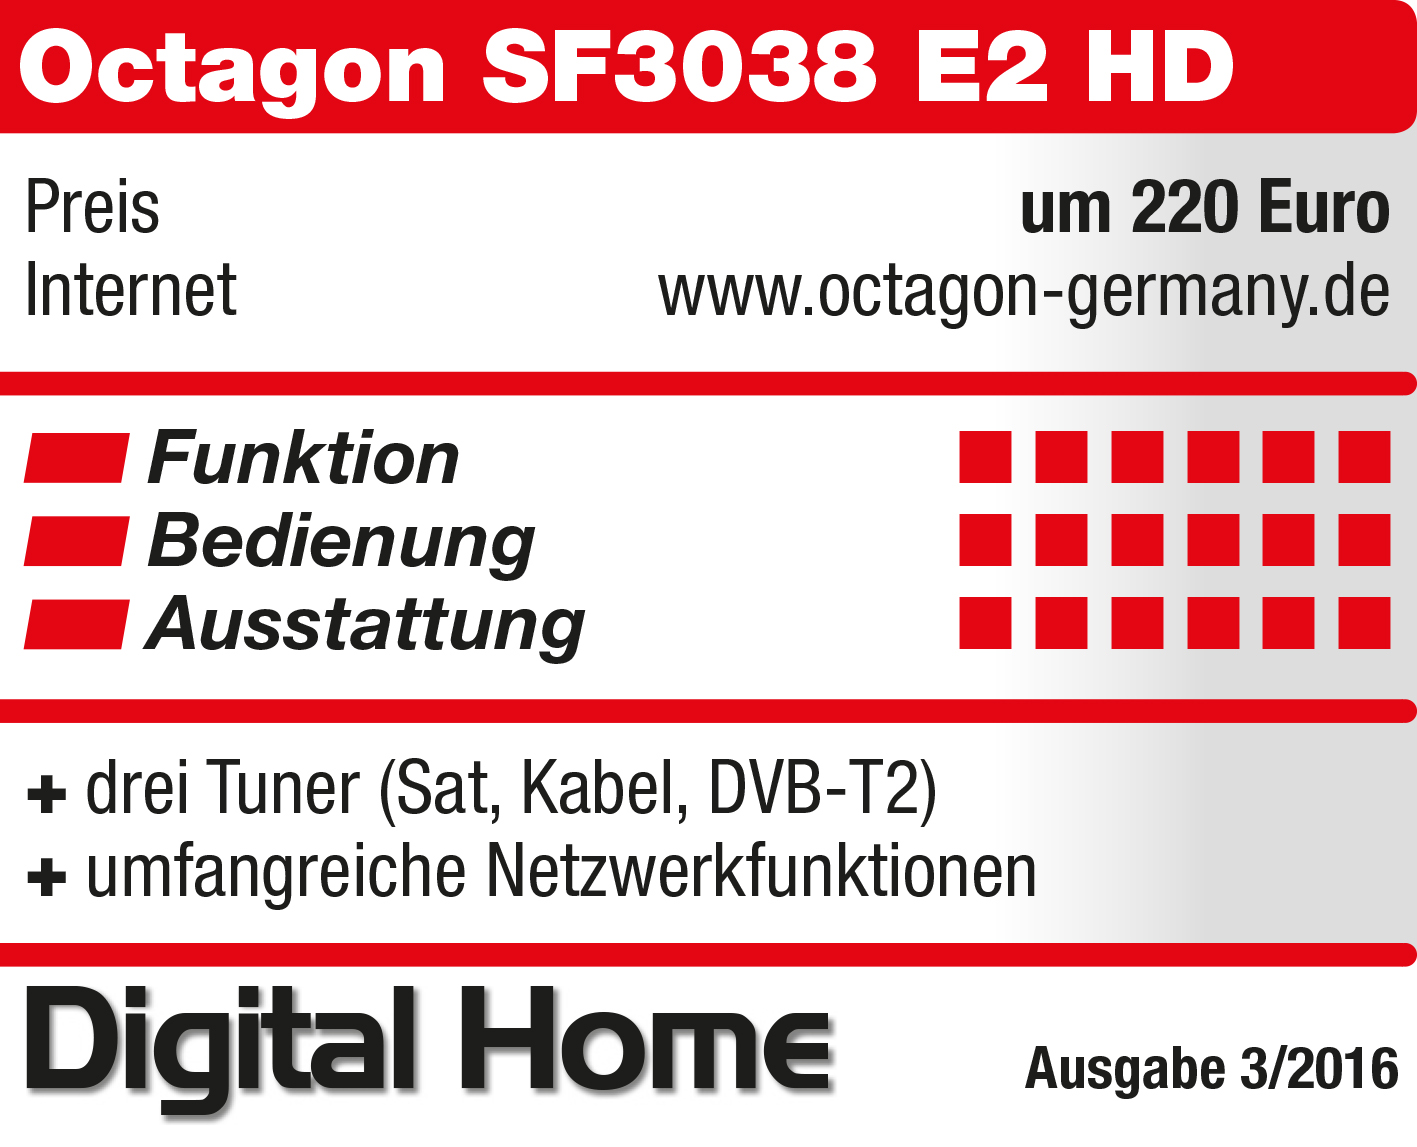 DigitalHome_OCTAGON_SF3038